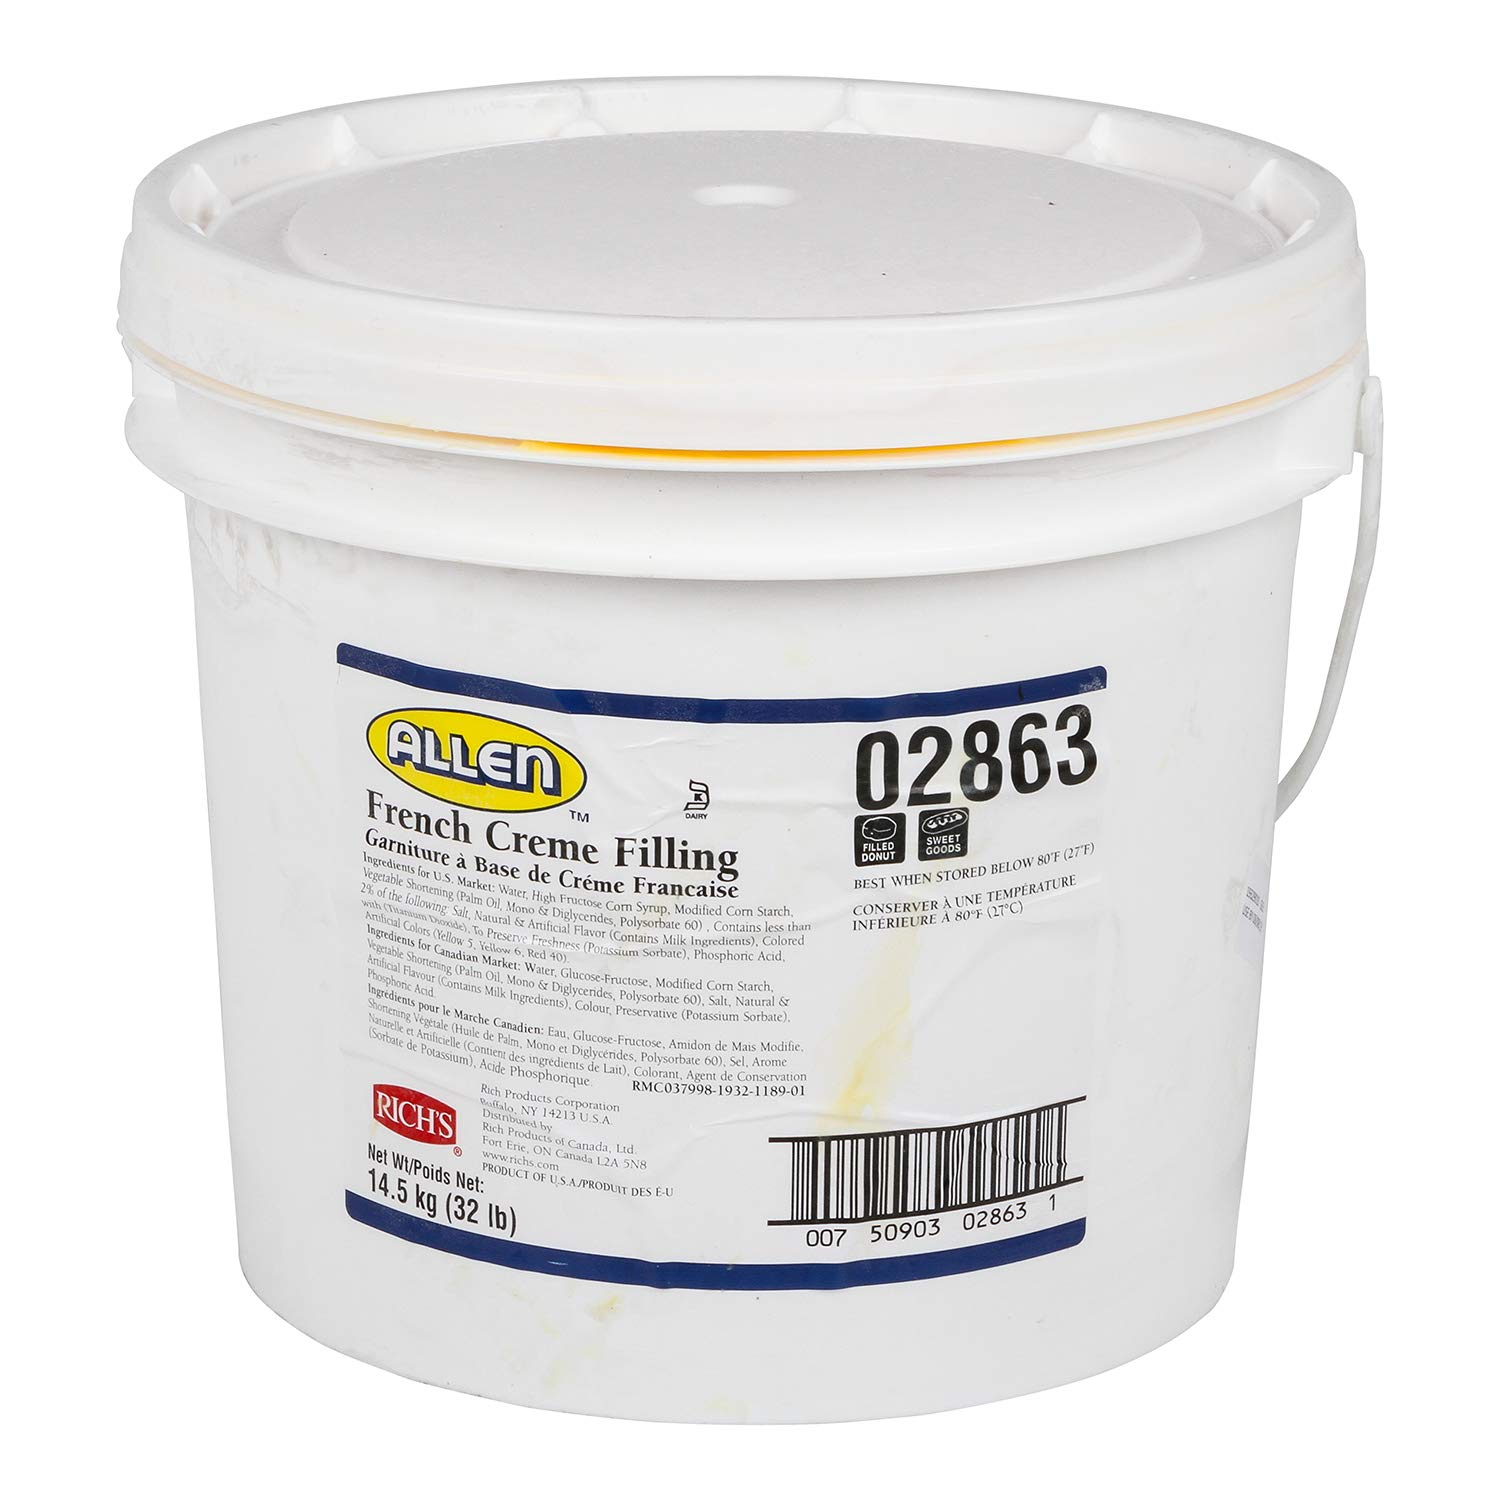 Rich's JW Allen French Creme Filling, Perfect for Pastry, 32 lb Pail